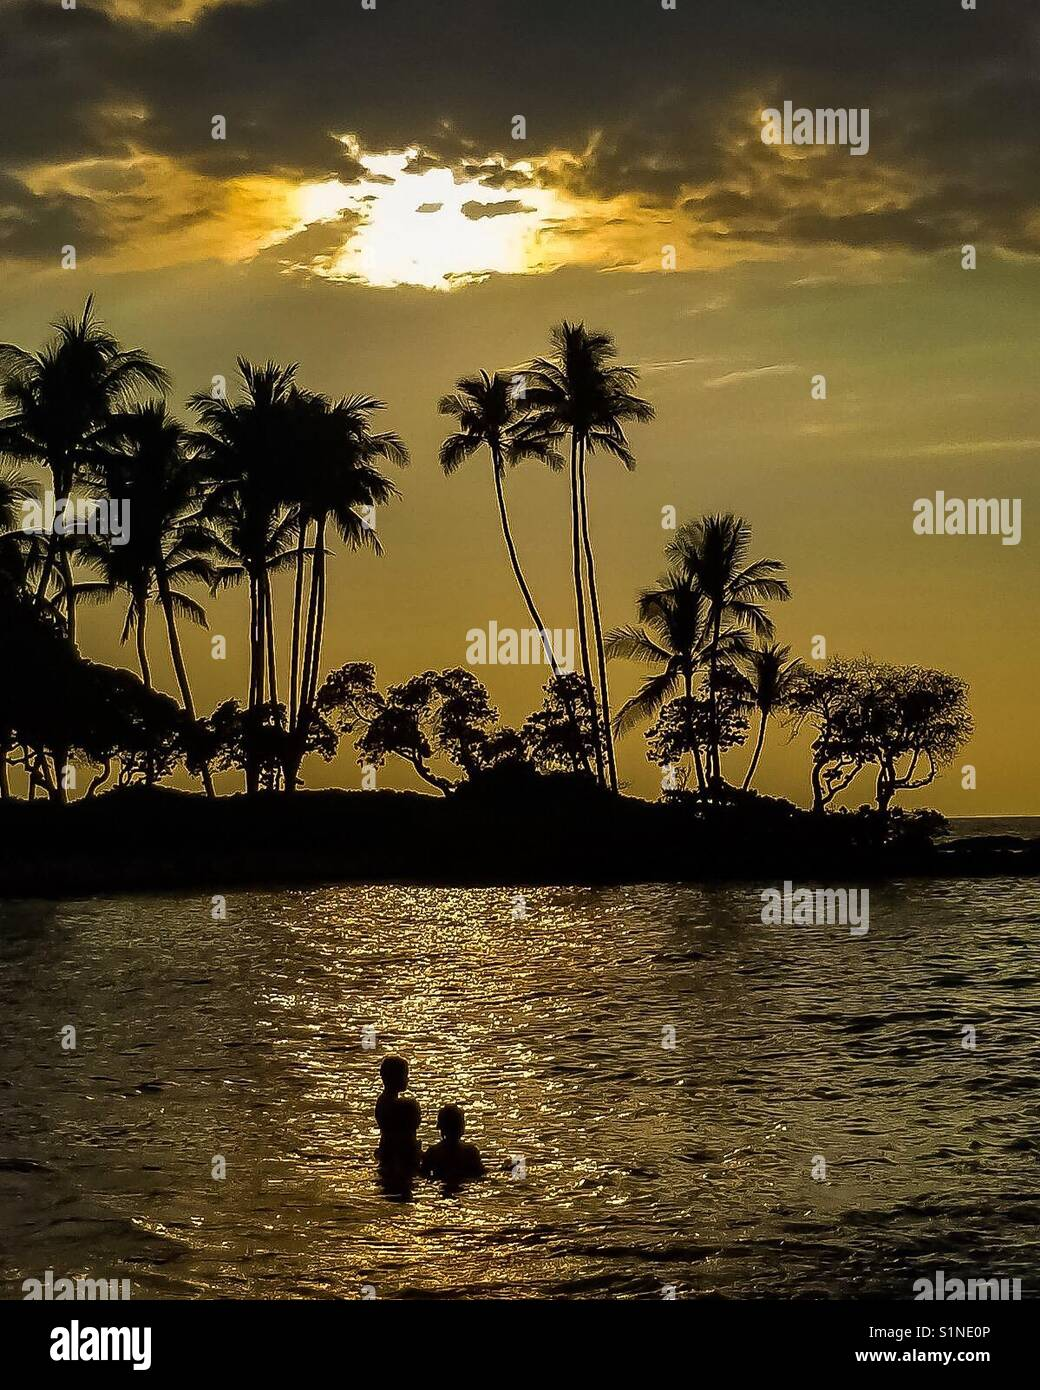 Vocation in Hawaii - Stock Image